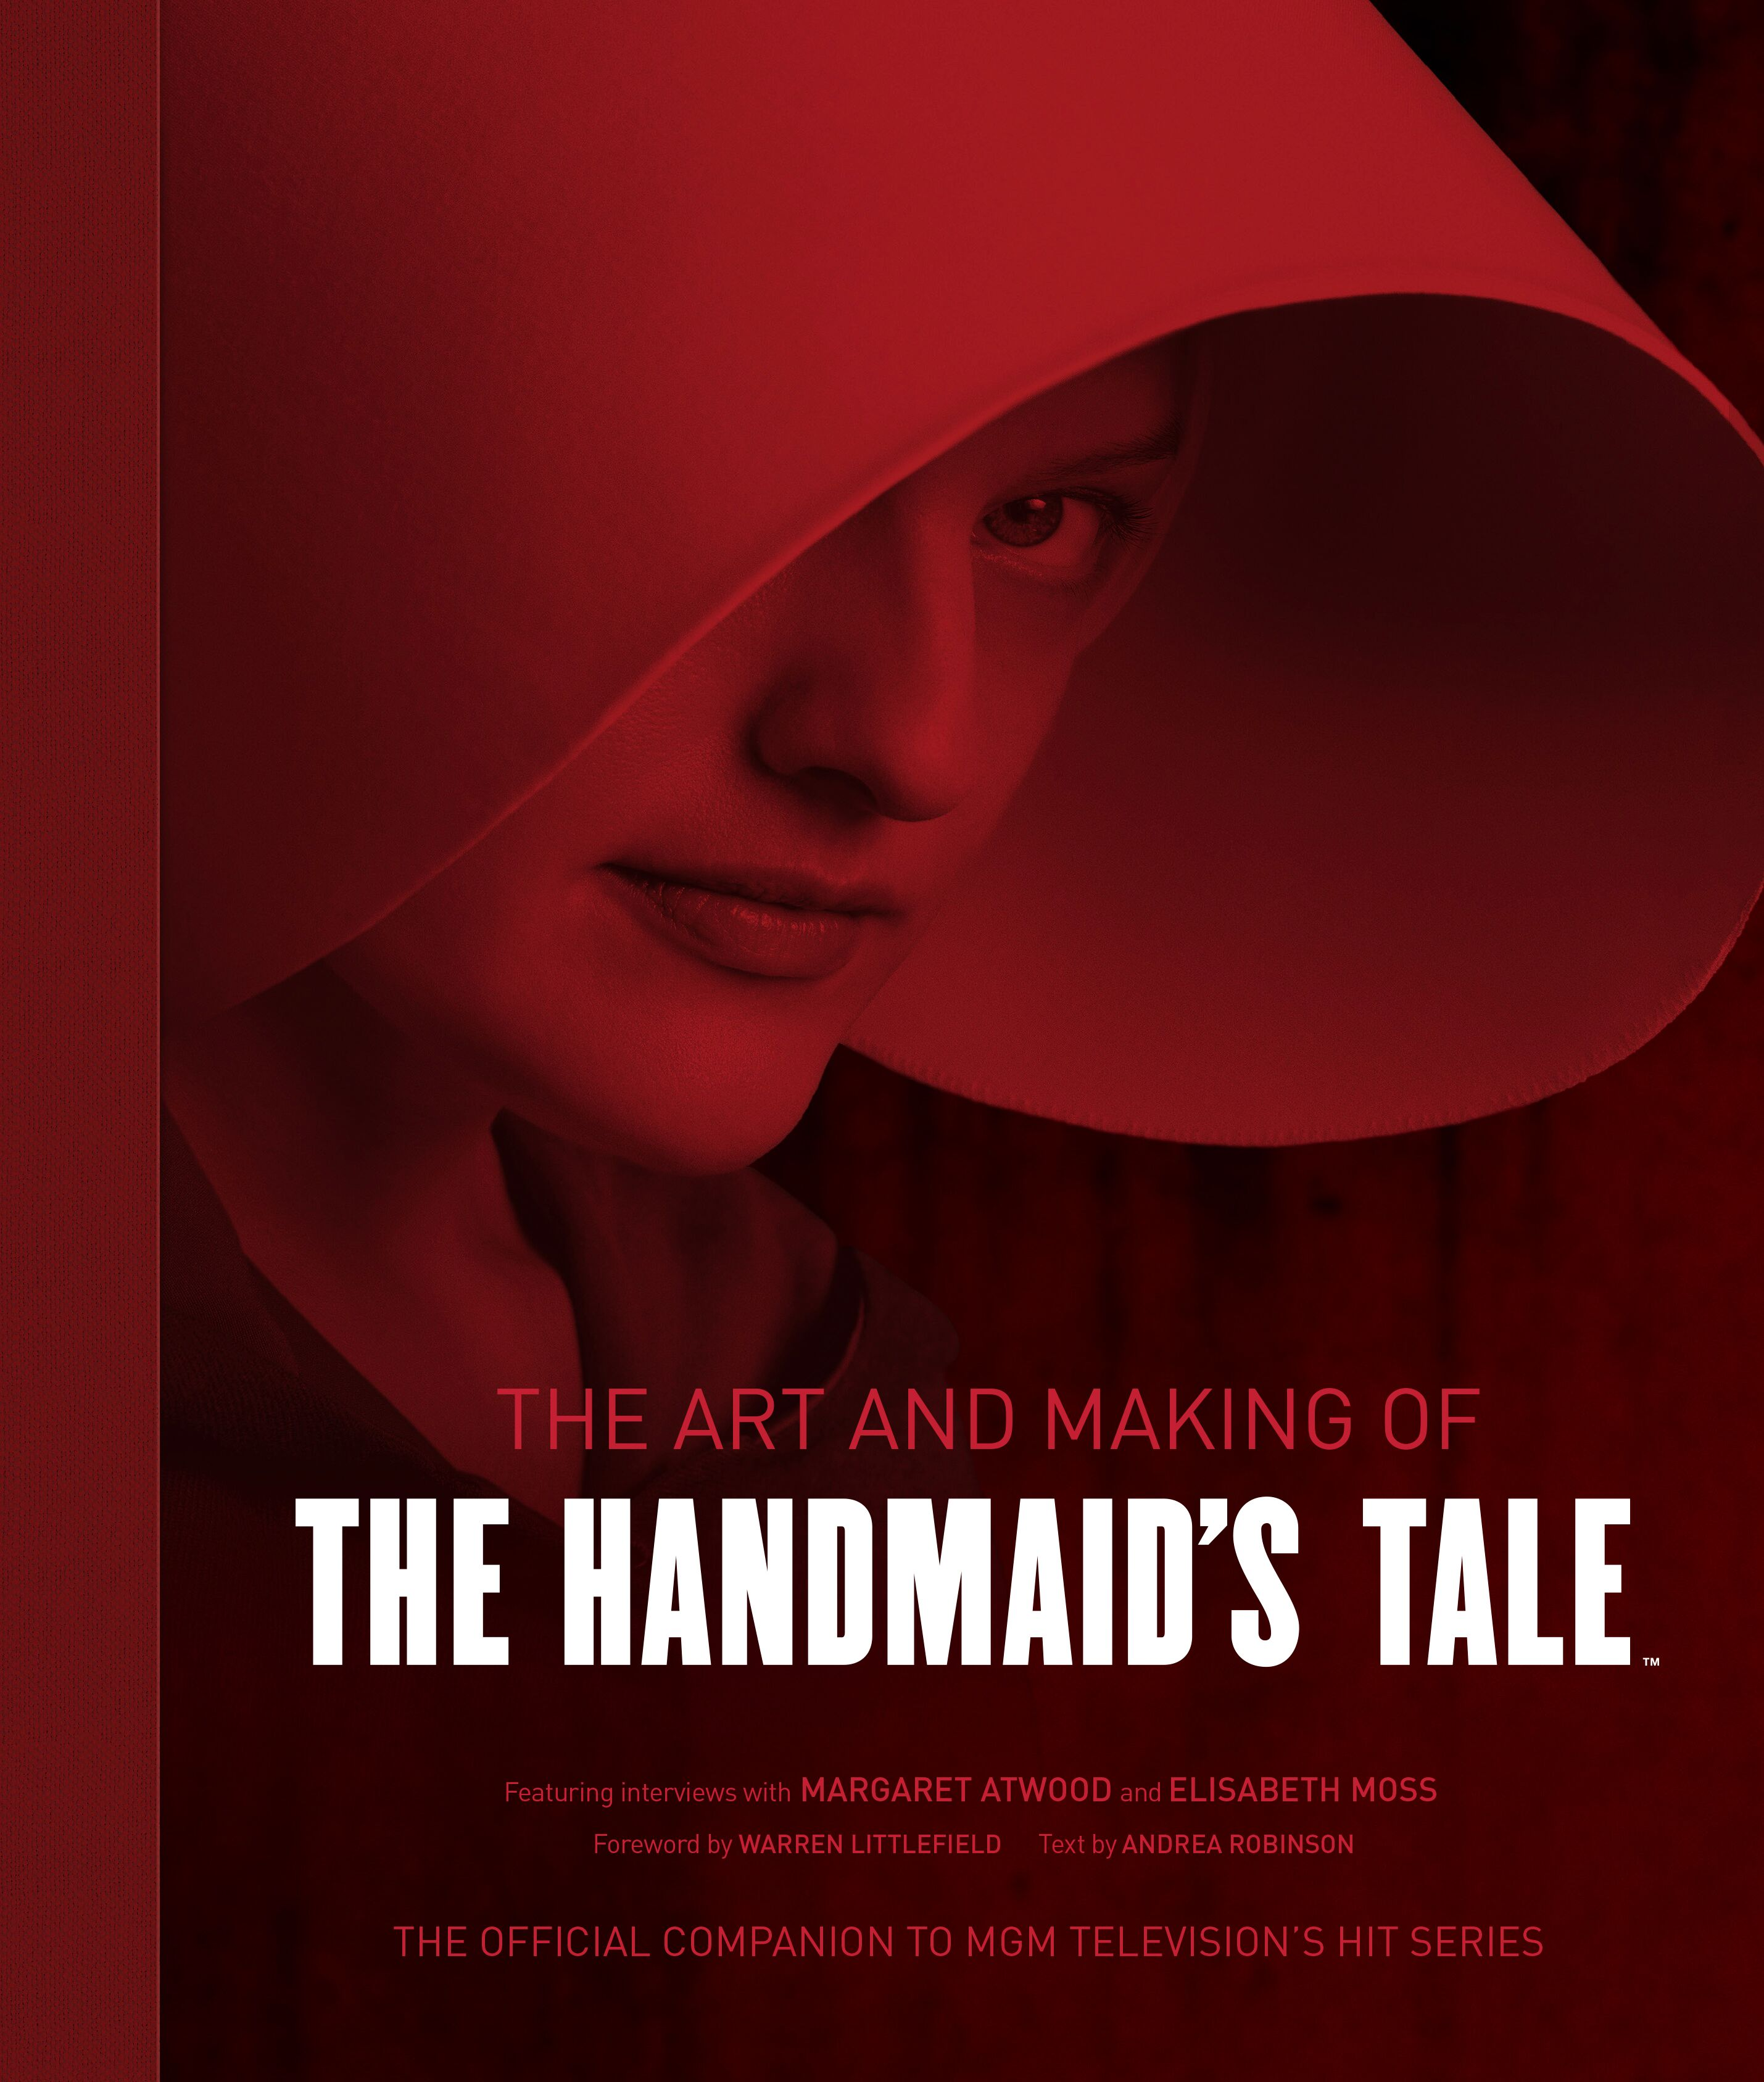 The cover of 'The Art and Making of The Handmaid's Tale', a book authored by Andrea Robinson.